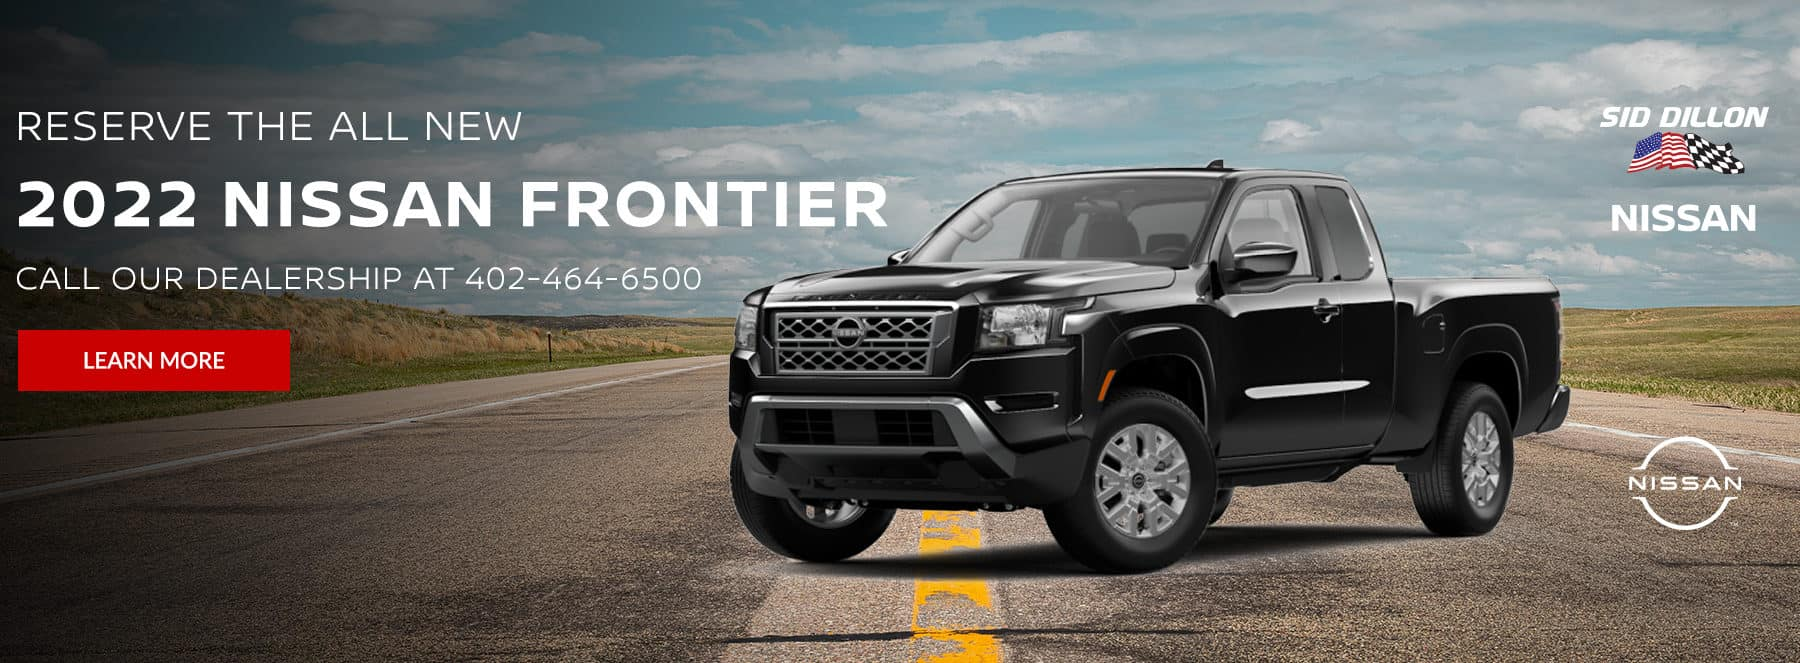 All New 2022 Nissan Frontier, Now Available at Sid Dillon Nissan